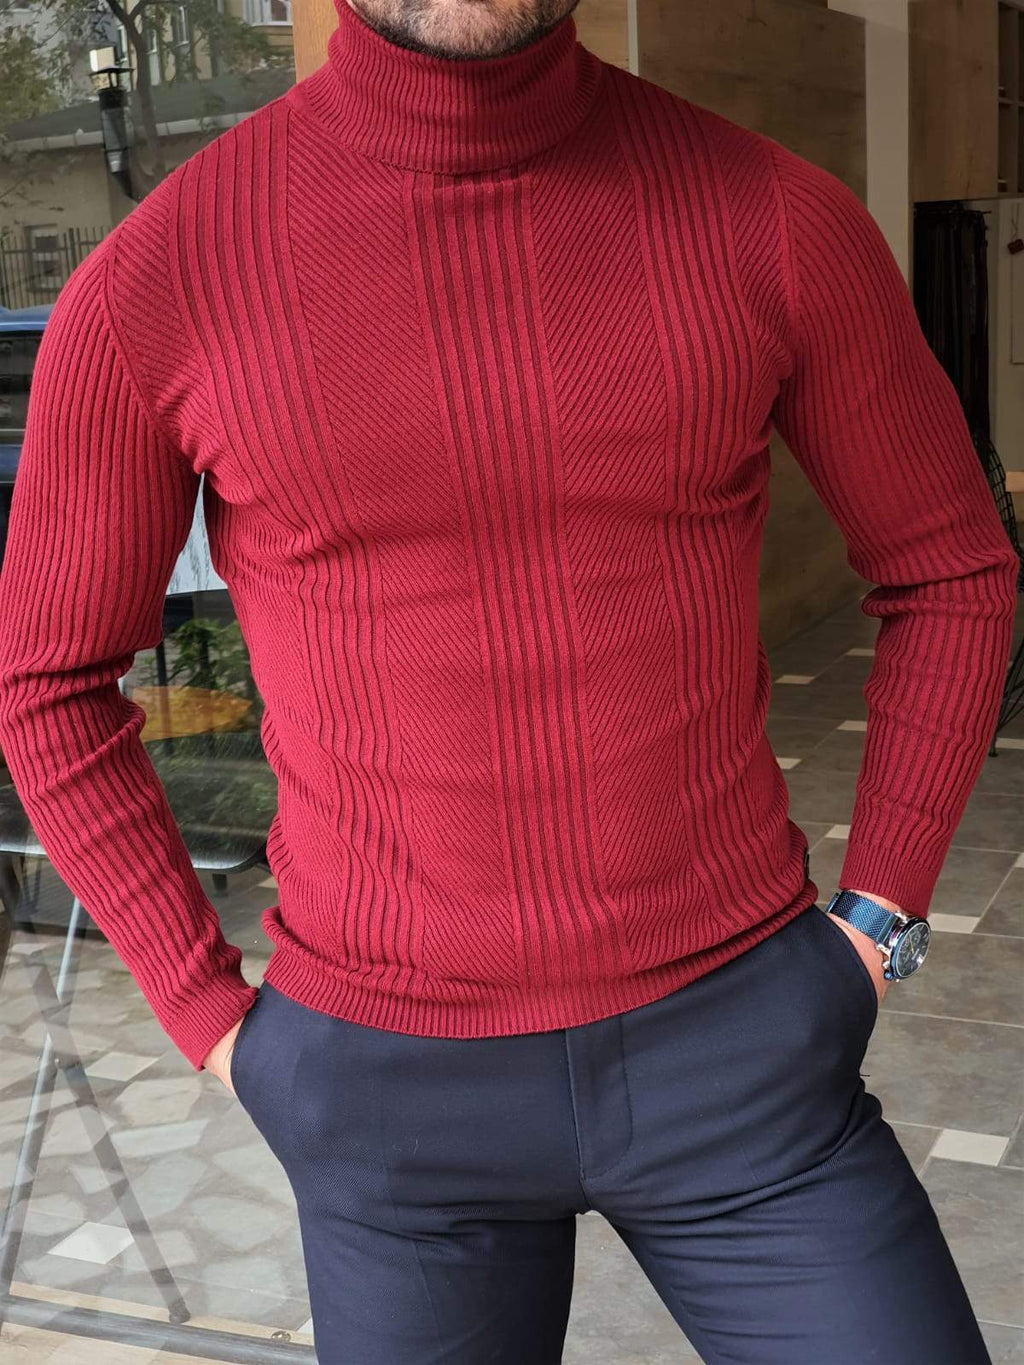 Elko Claret Red Slim Fit Striped Turtleneck Wool Sweater